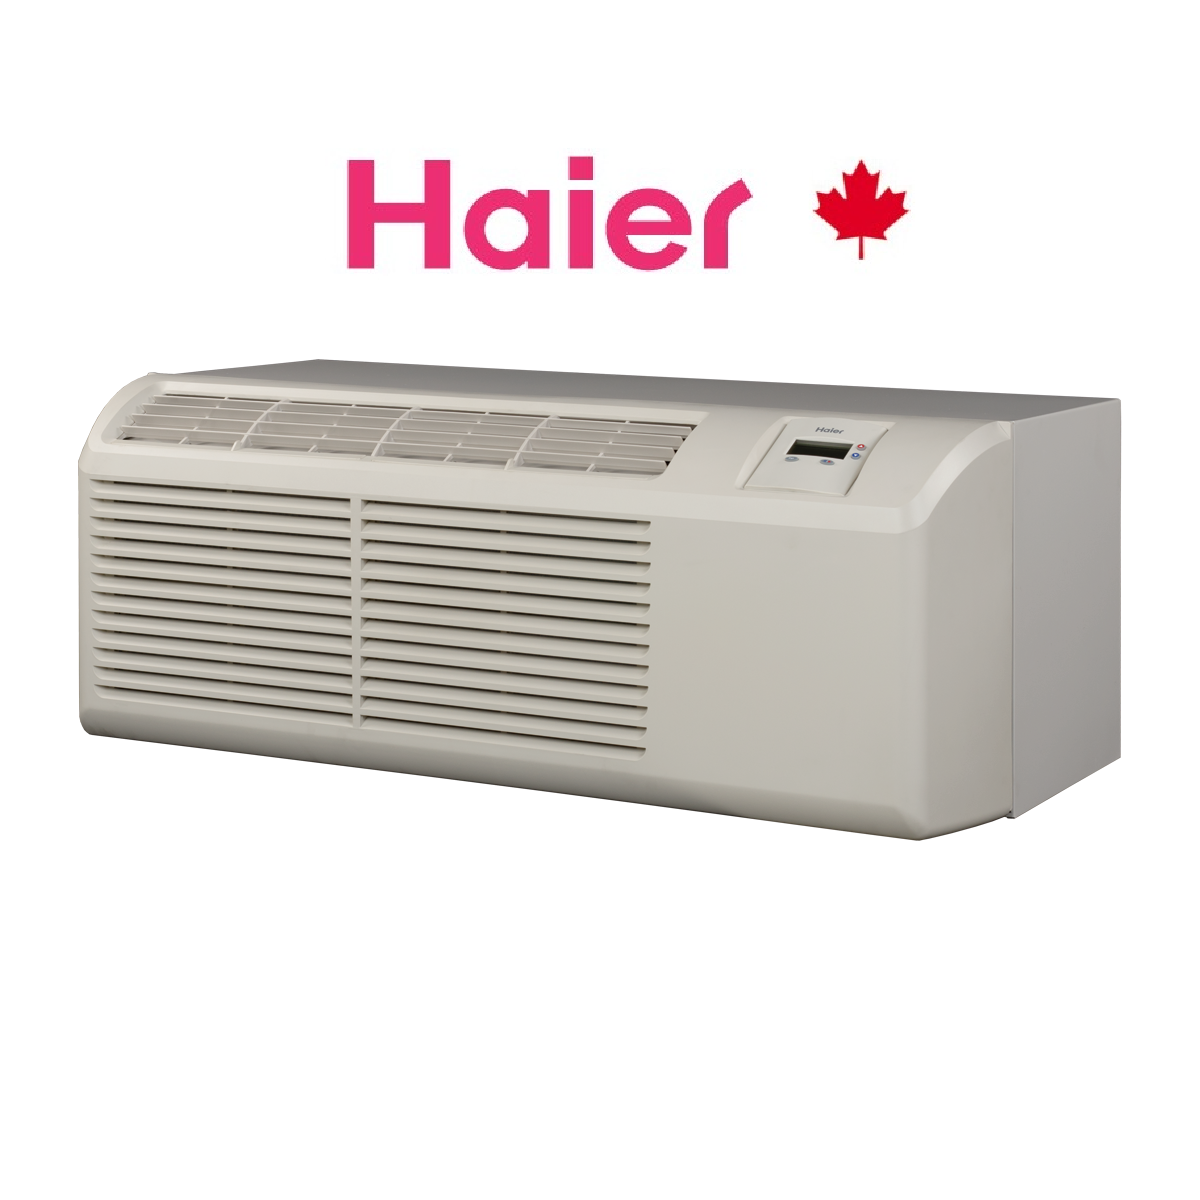 Electric Heat And Air Wall Units : Haier ptac units pthh uac heat pump cooling and heating